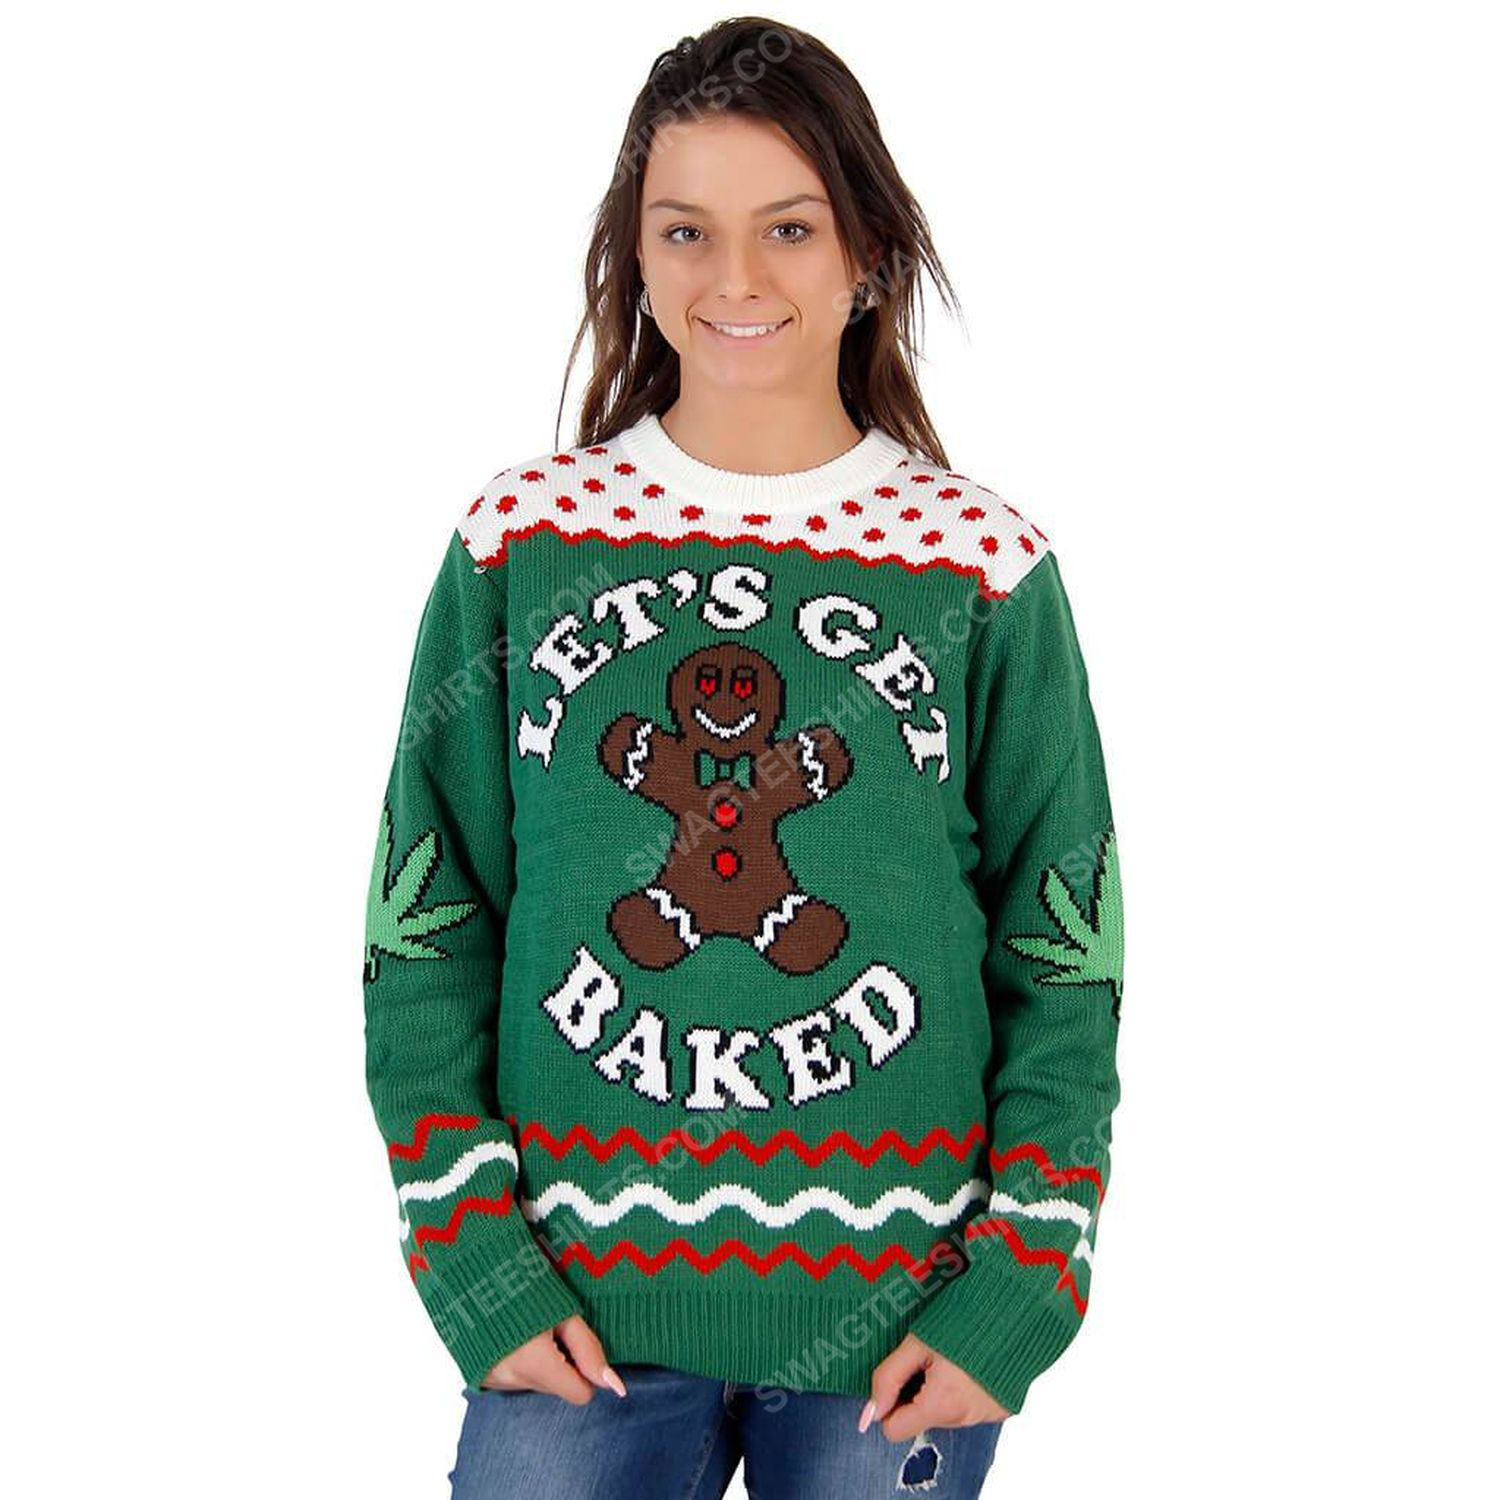 Let's get baked happy gingerbread ugly christmas sweater 2 - Copy